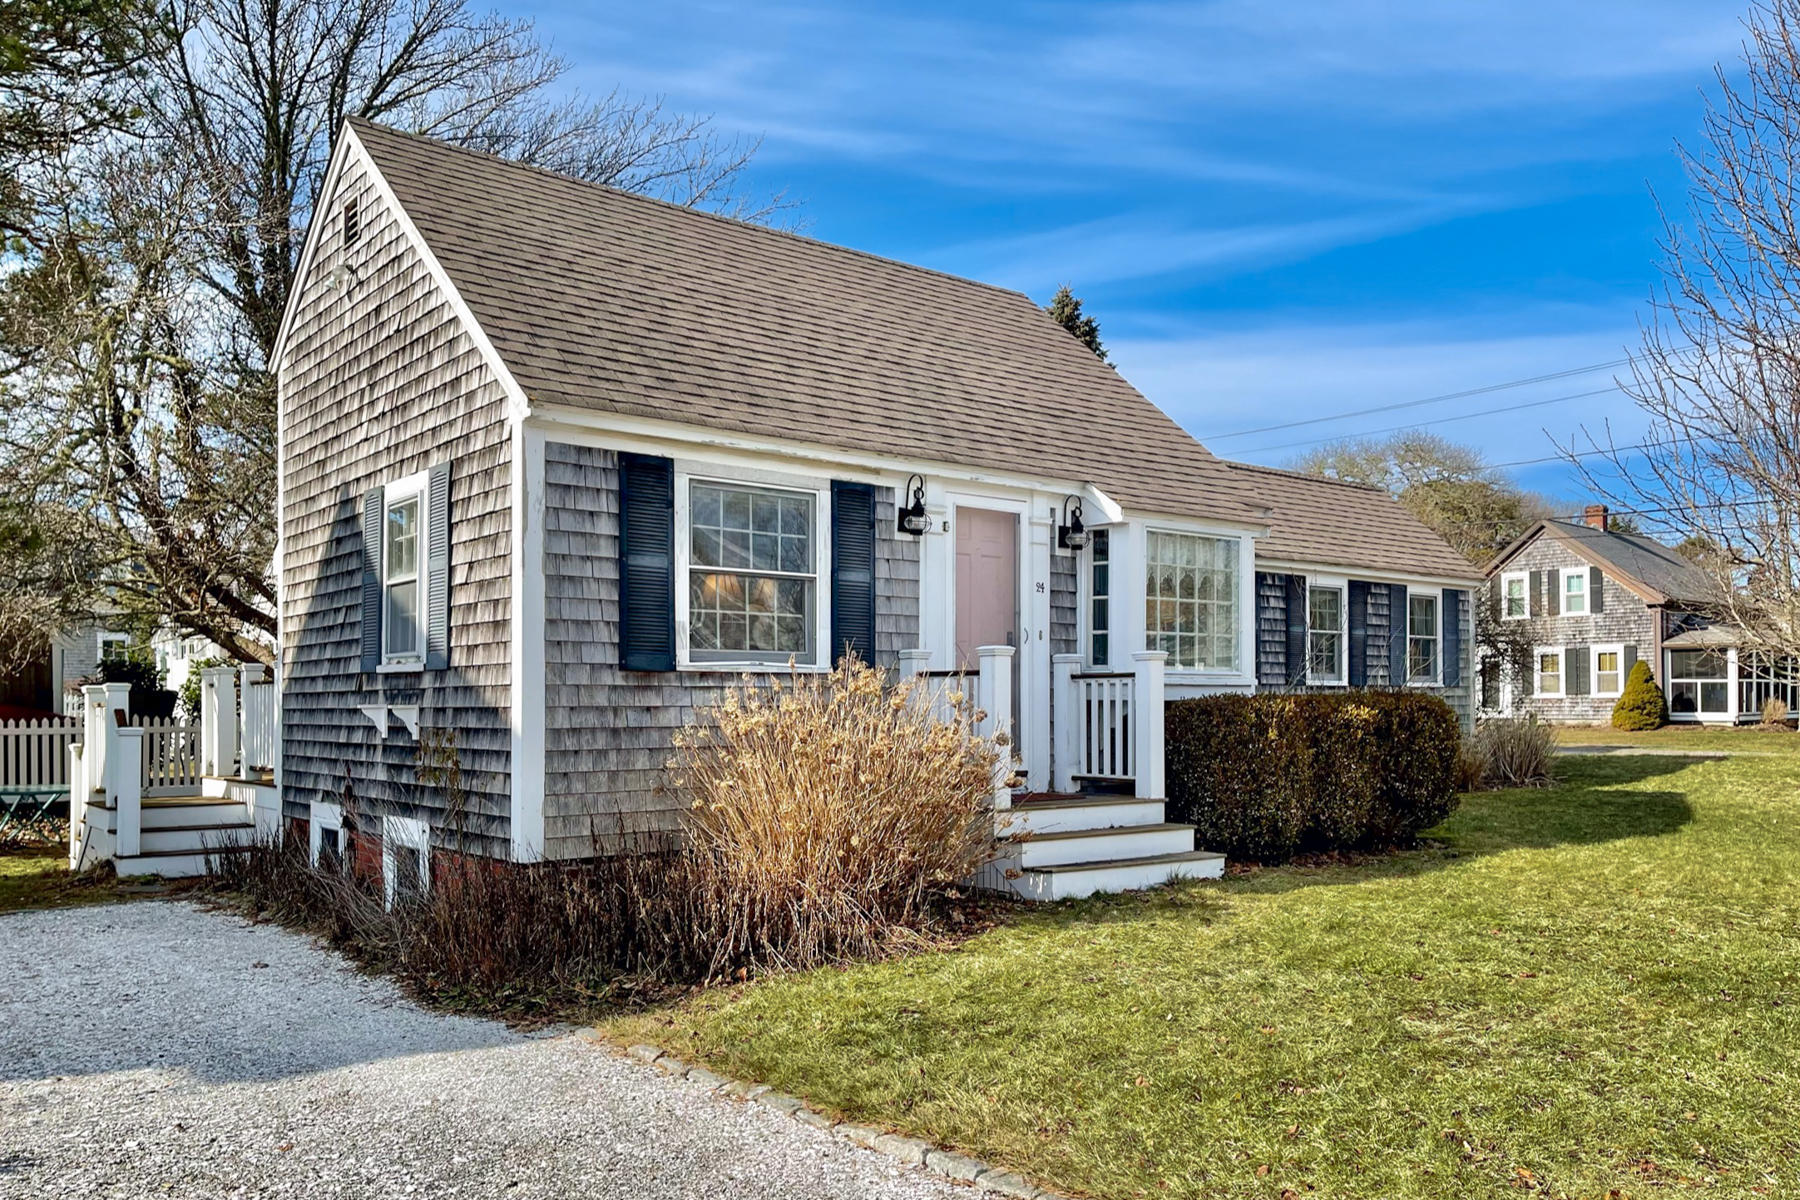 click to view more details 24 Cross Street, Harwich Port, MA 02646